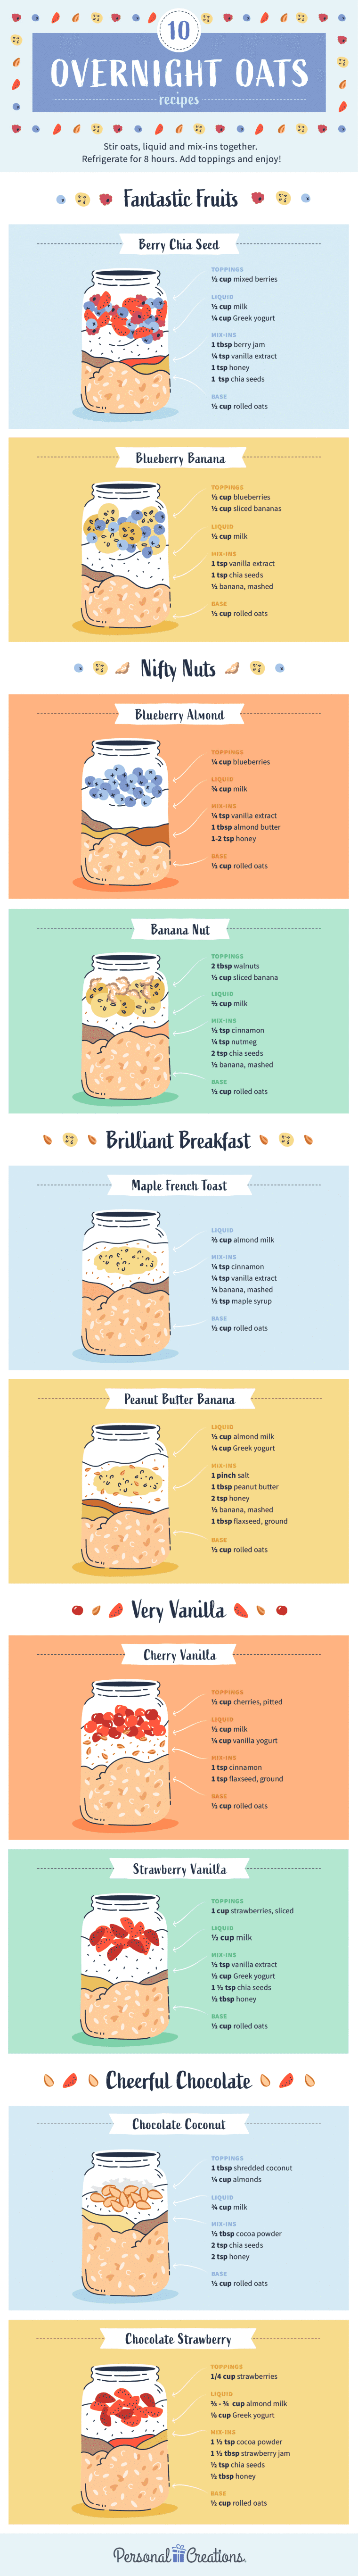 10 Healthy Overnight Oats Recipes #infographic